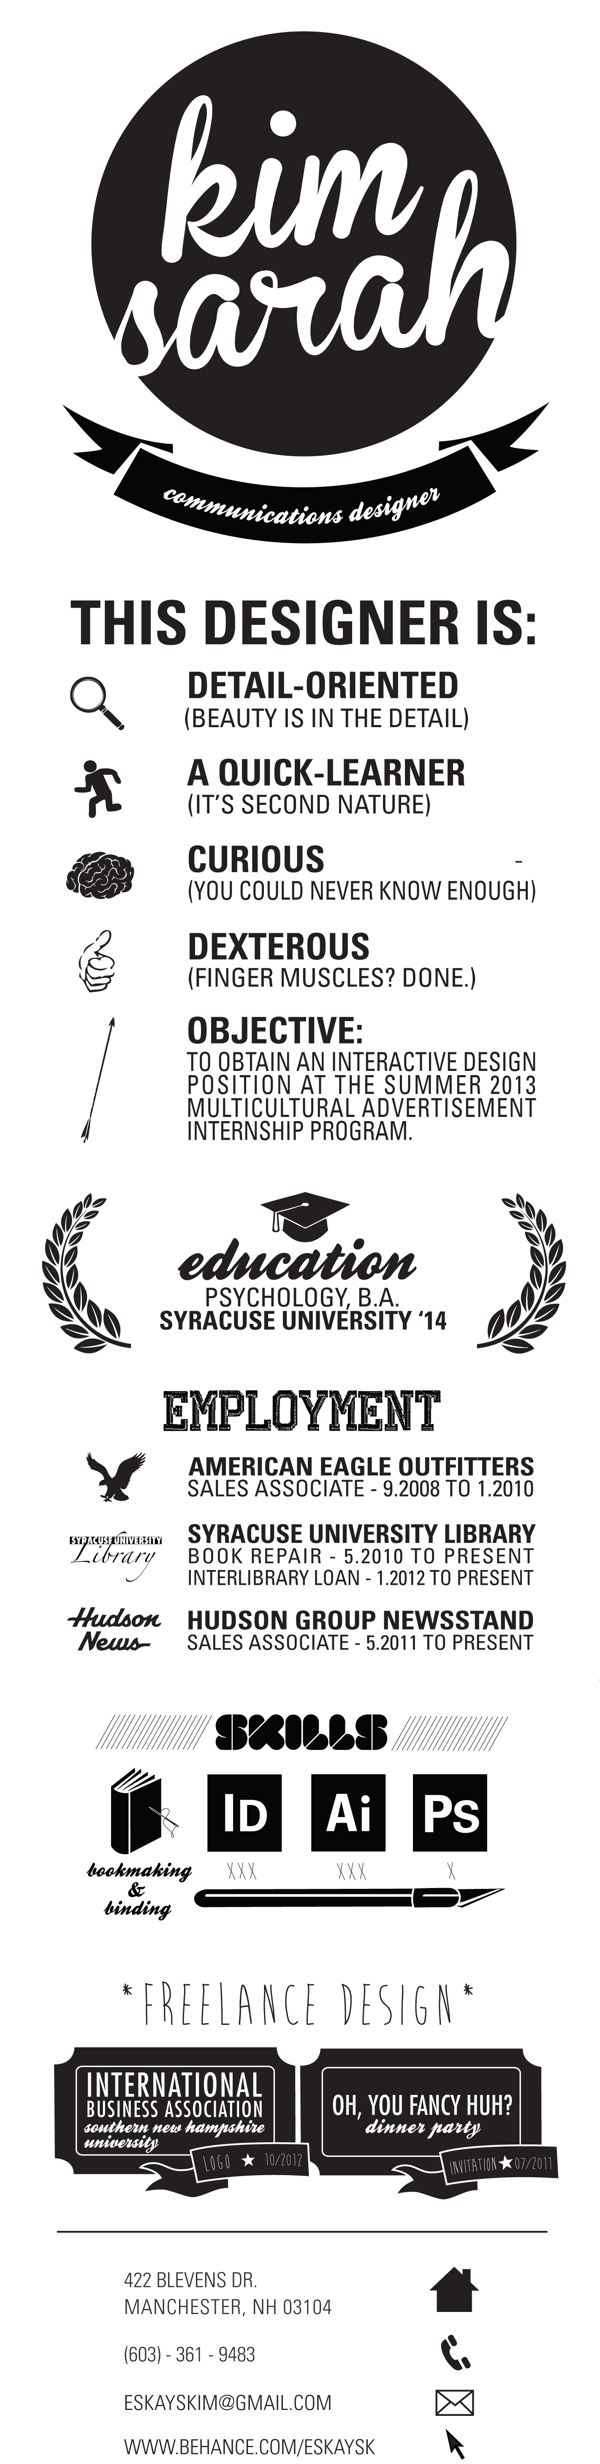 best ideas about sample of resume resume resume i design infographic resumes check out my portfolio by clicking on the pic